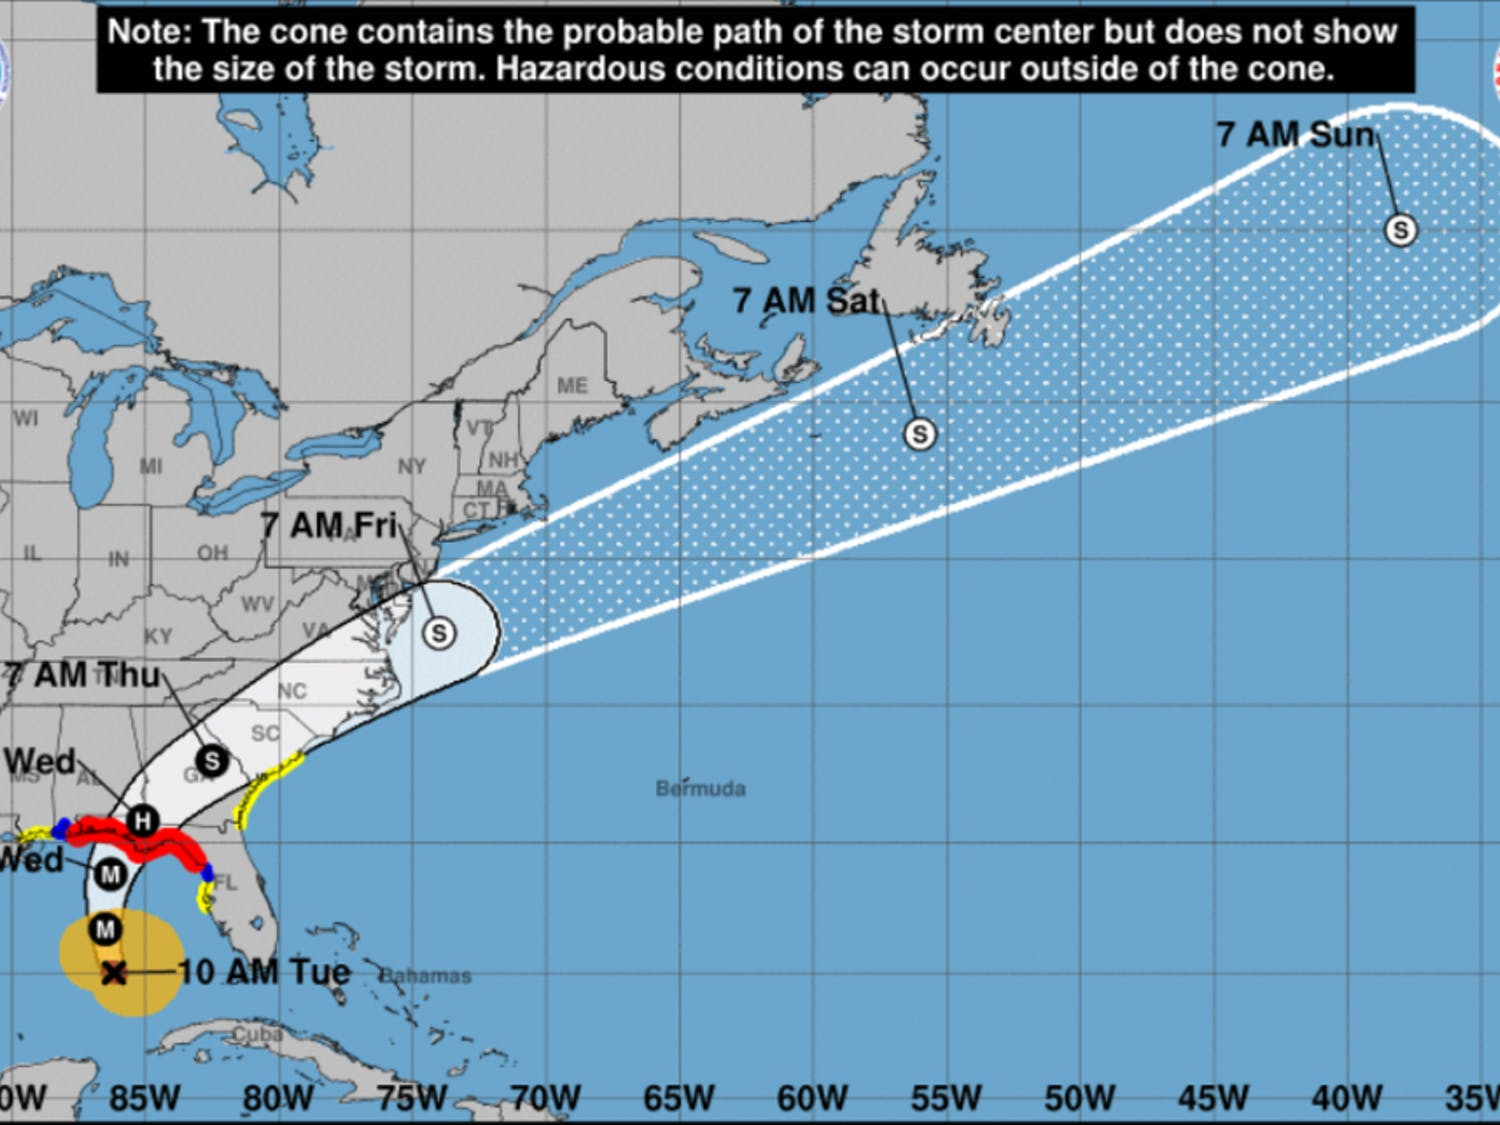 The hurricane's projected path as of 10 a.m. on Tuesday, according to the National Hurricane Center.